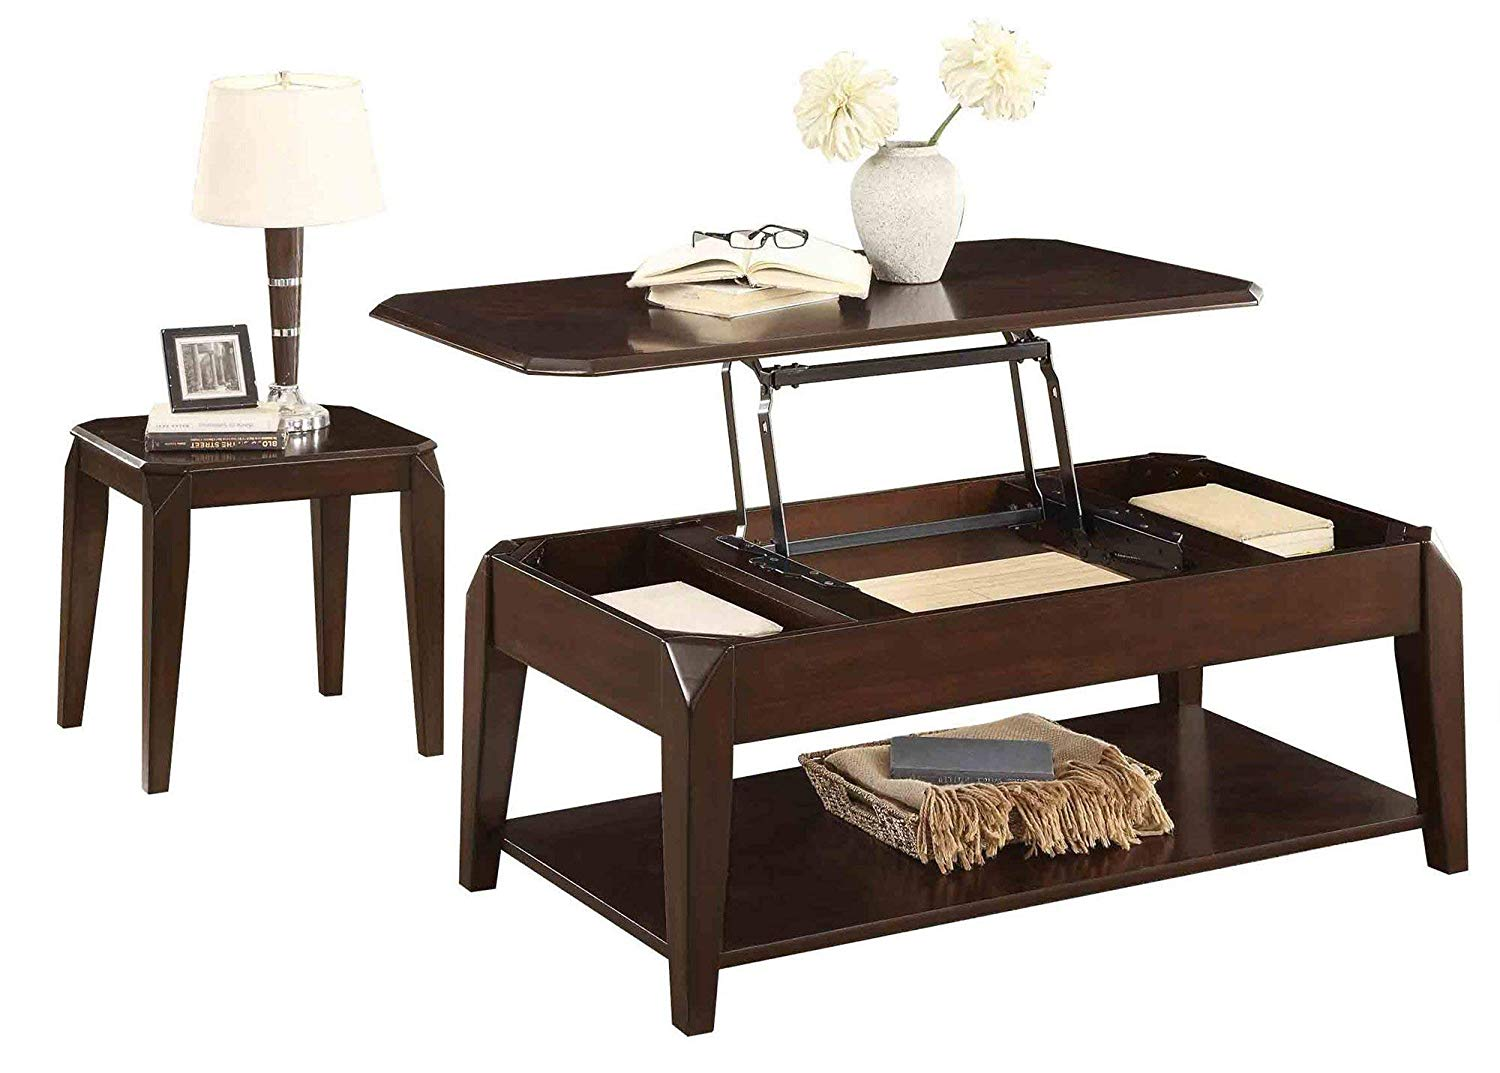 Schmier Modern 2PC Occasional Set Lift Top Cocktail Table on Casters, 1 End Table in Warm Cherry